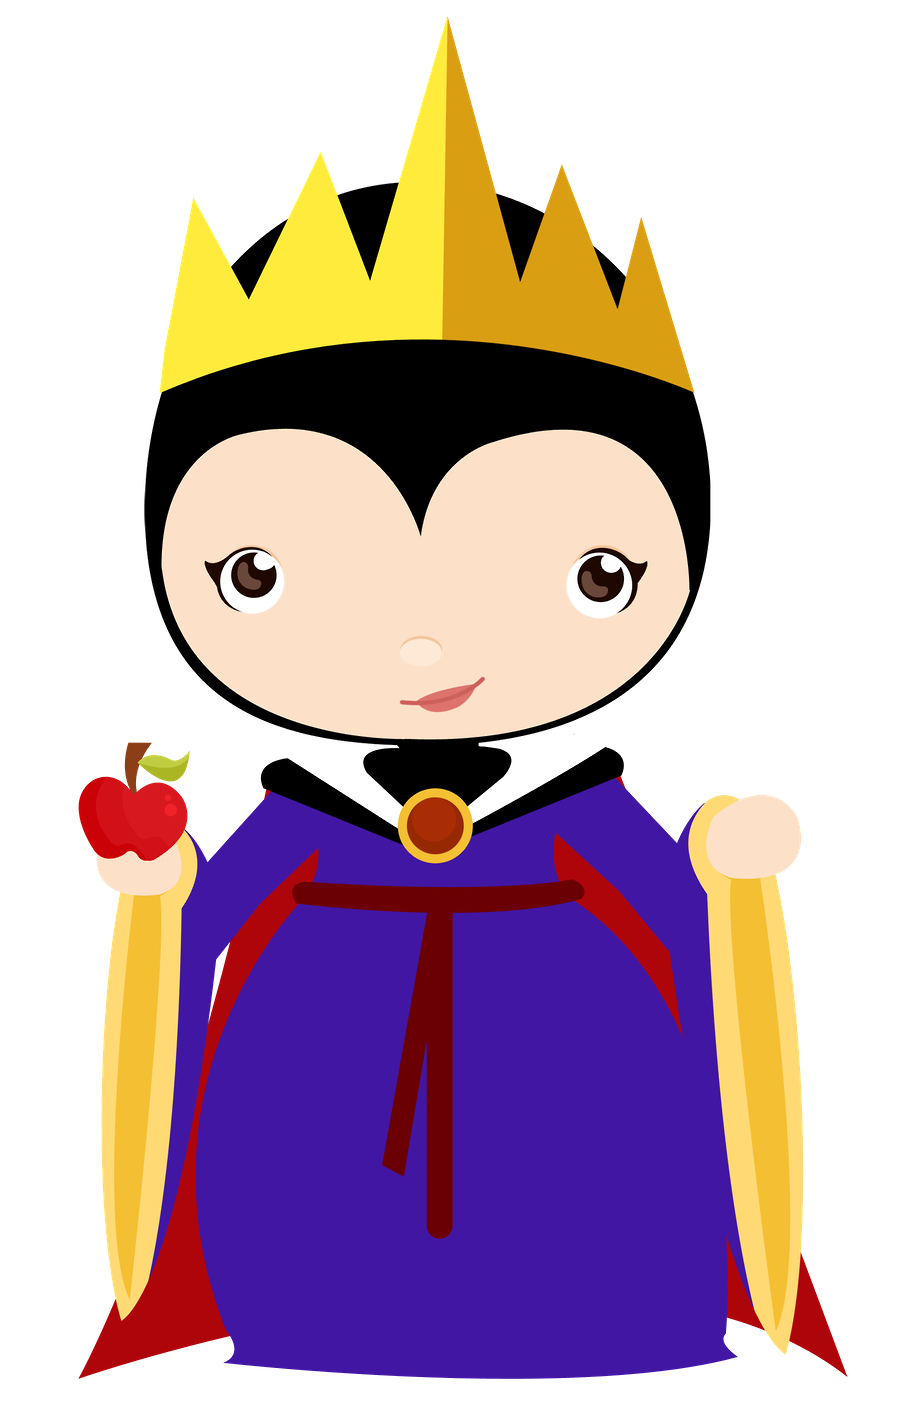 cute clipart disney clipart snow white birthday disney [ 900 x 1412 Pixel ]